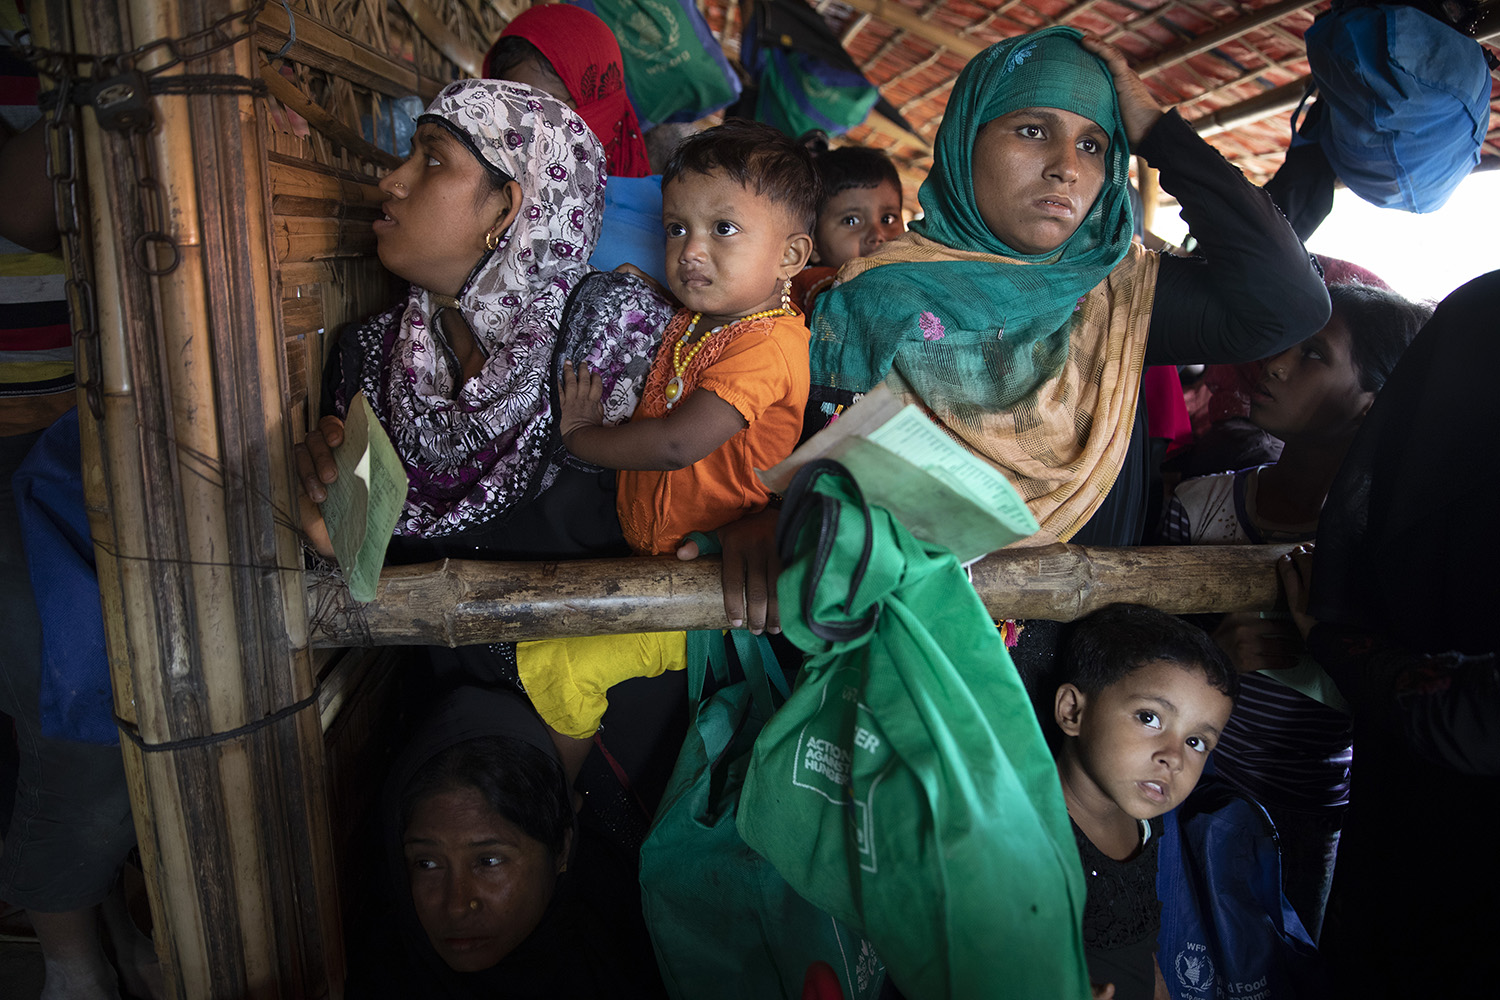 Rohingya women and children who fled Myanmar wait in line for food distribution in the Kutupalong camp in Cox's Bazar, Bangladesh, on Aug. 26, 2018.